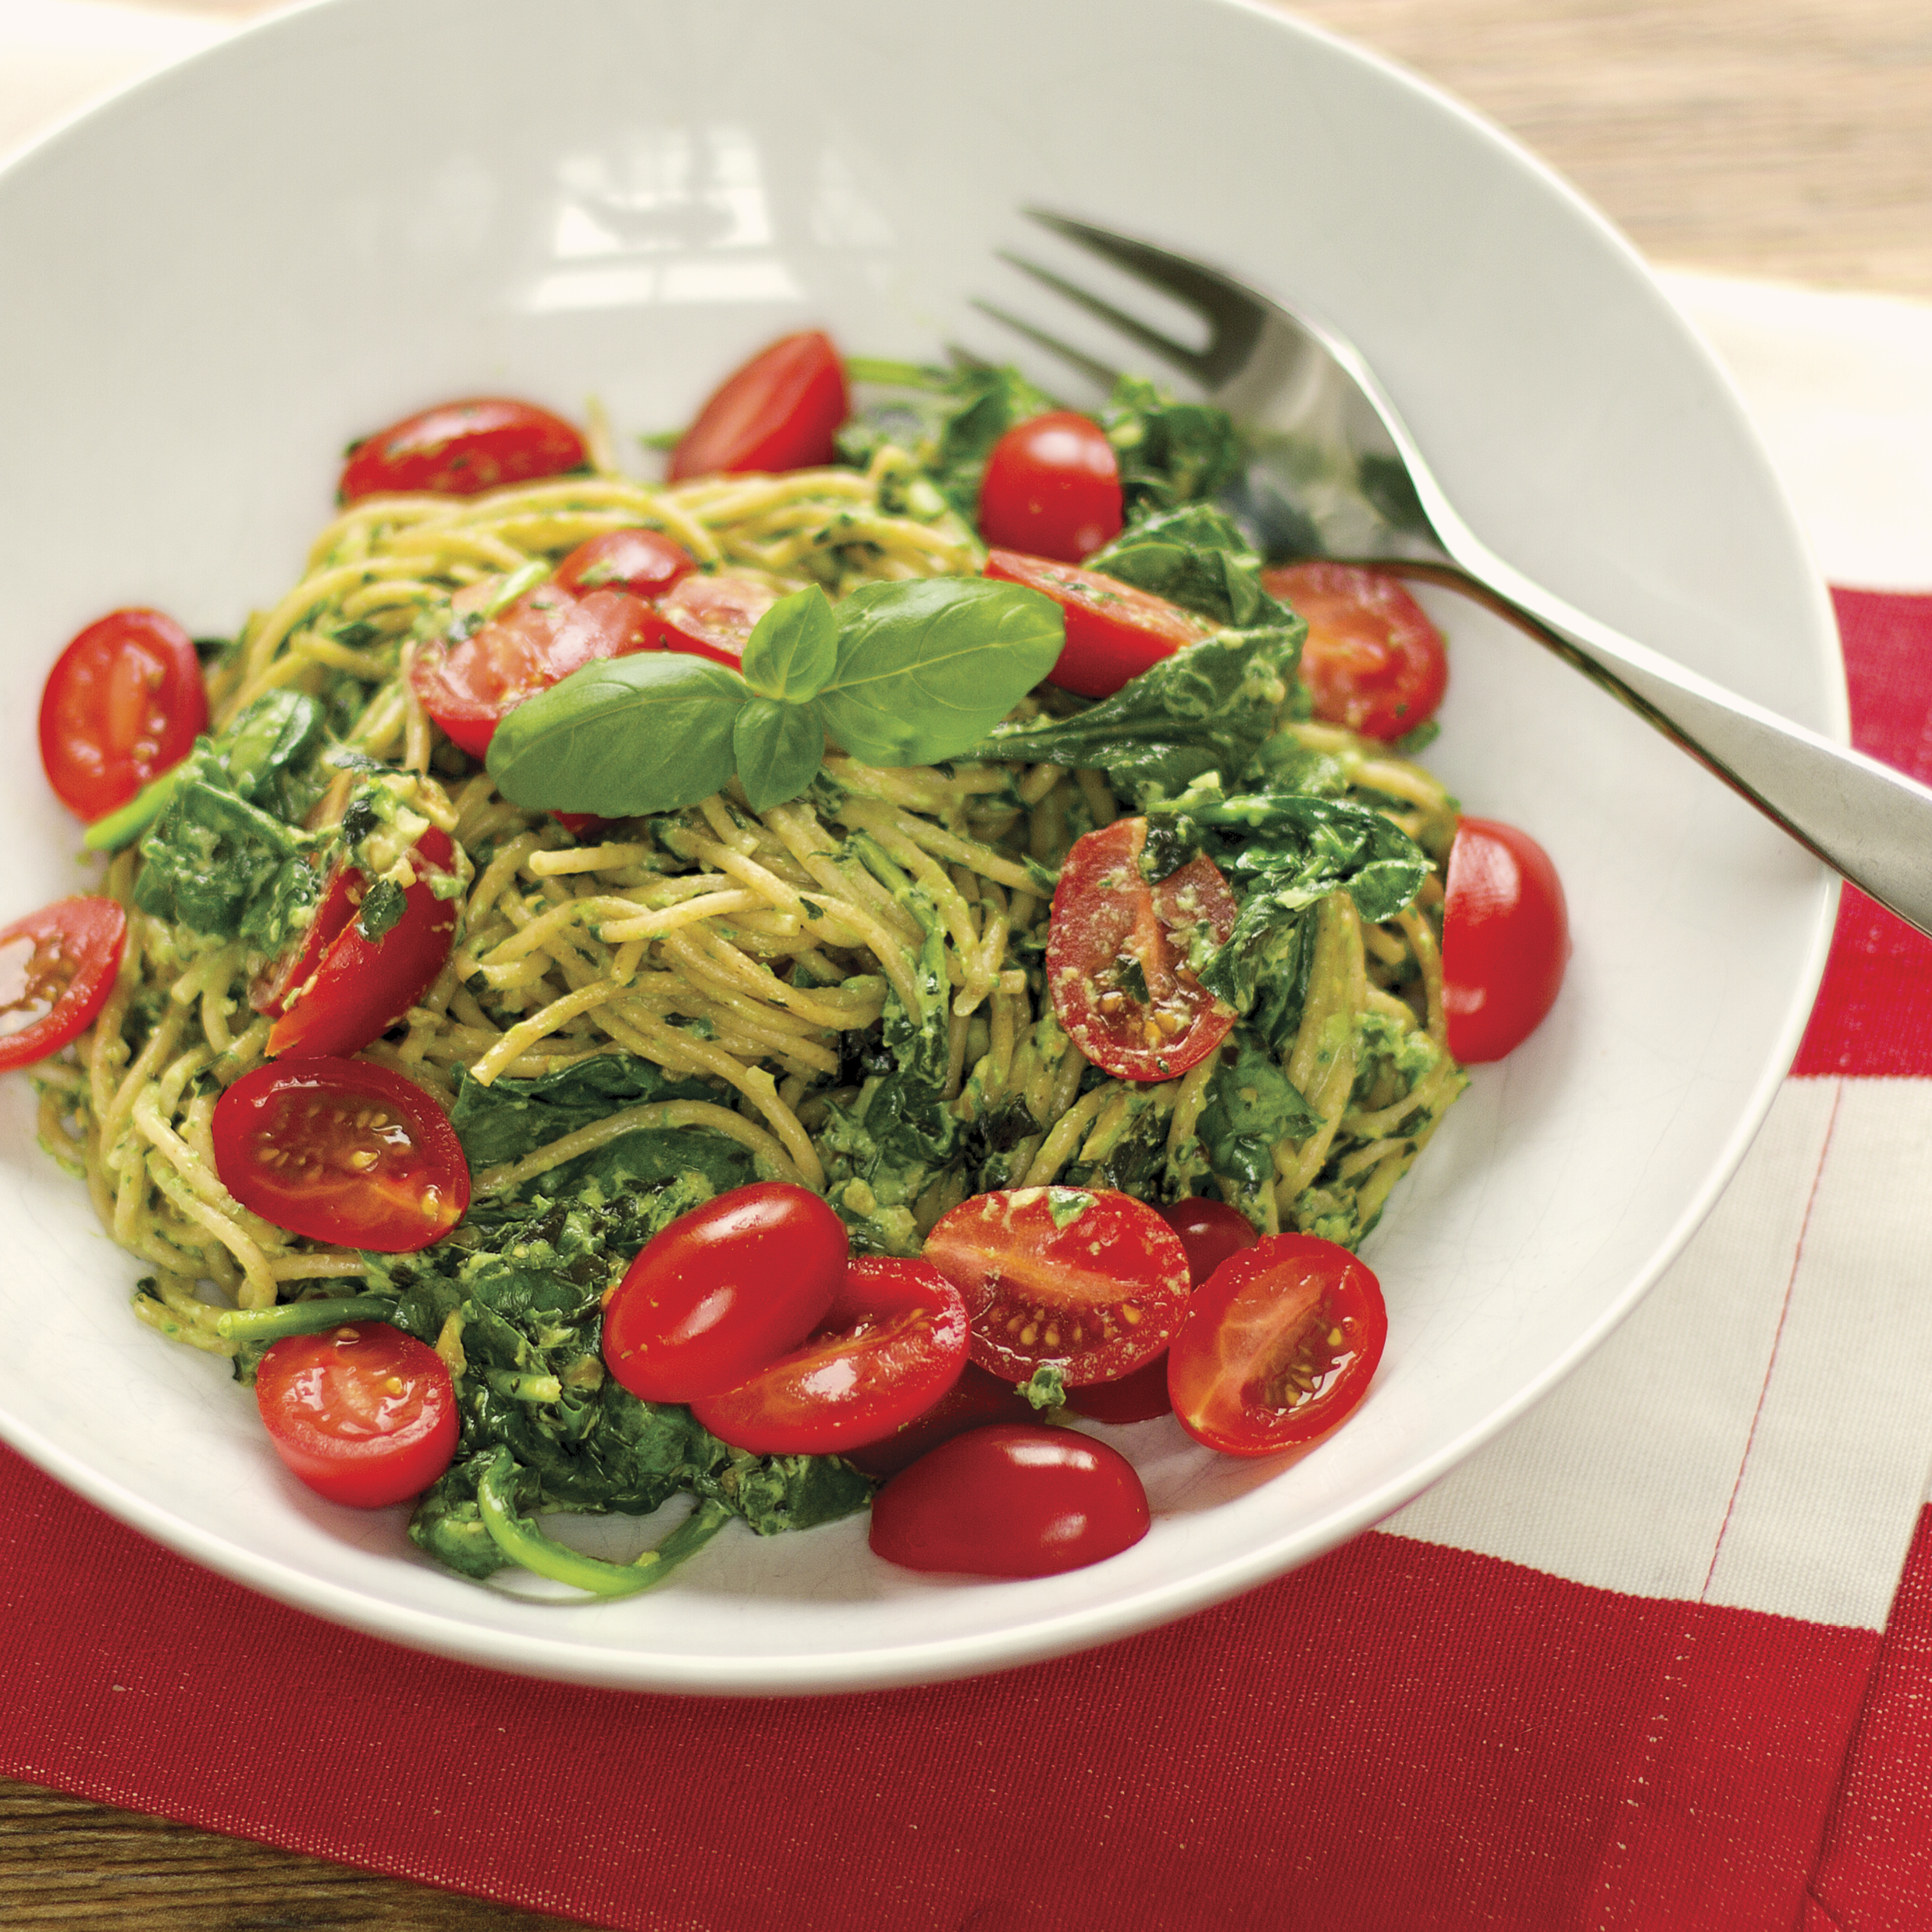 Pasta with Pesto, Spinach and Cherry Tomatoes